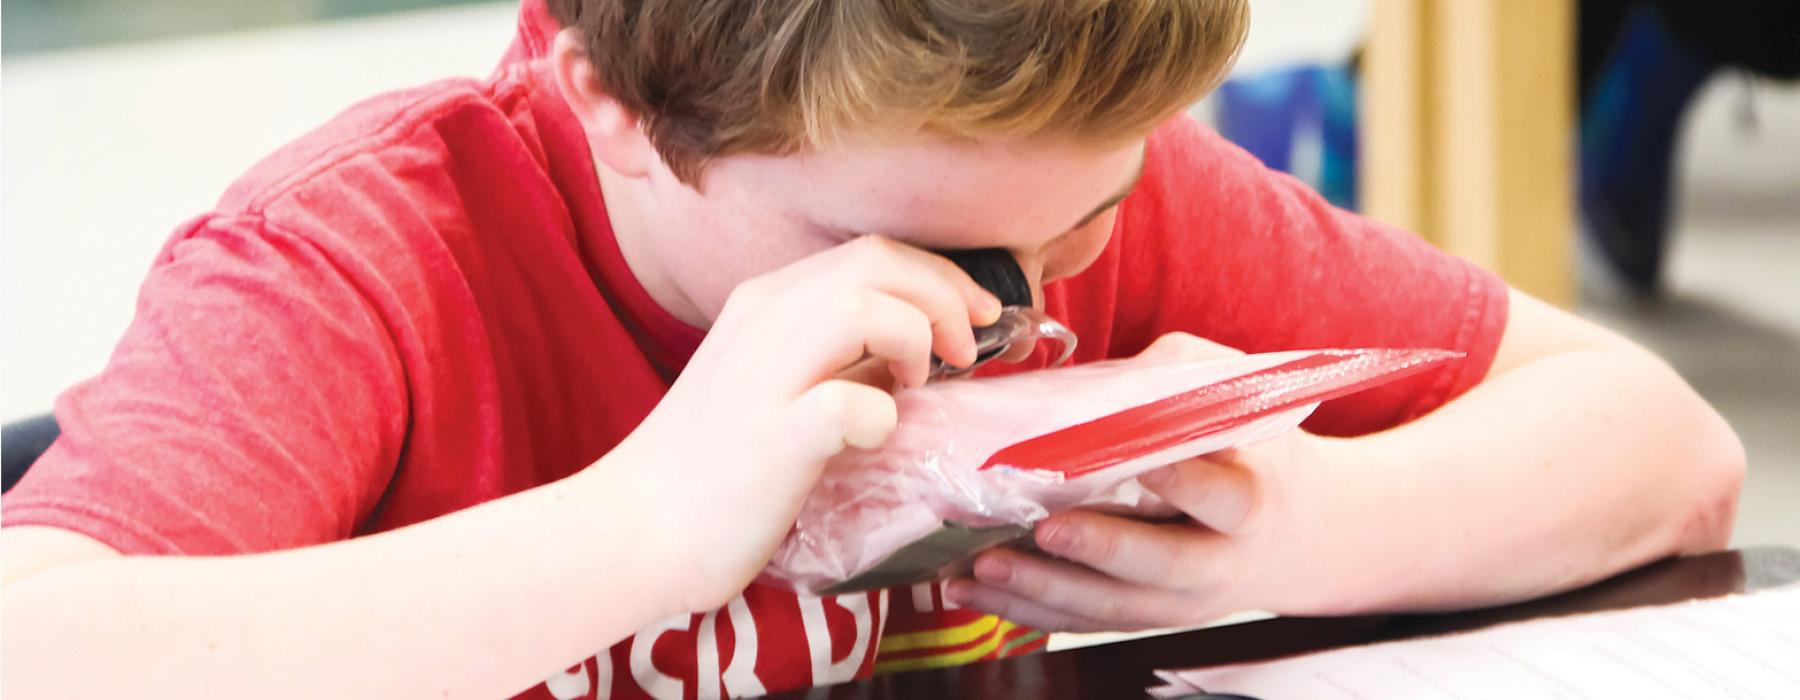 Boy looks at insulation material through loupe in Home Heat Transfer workshop